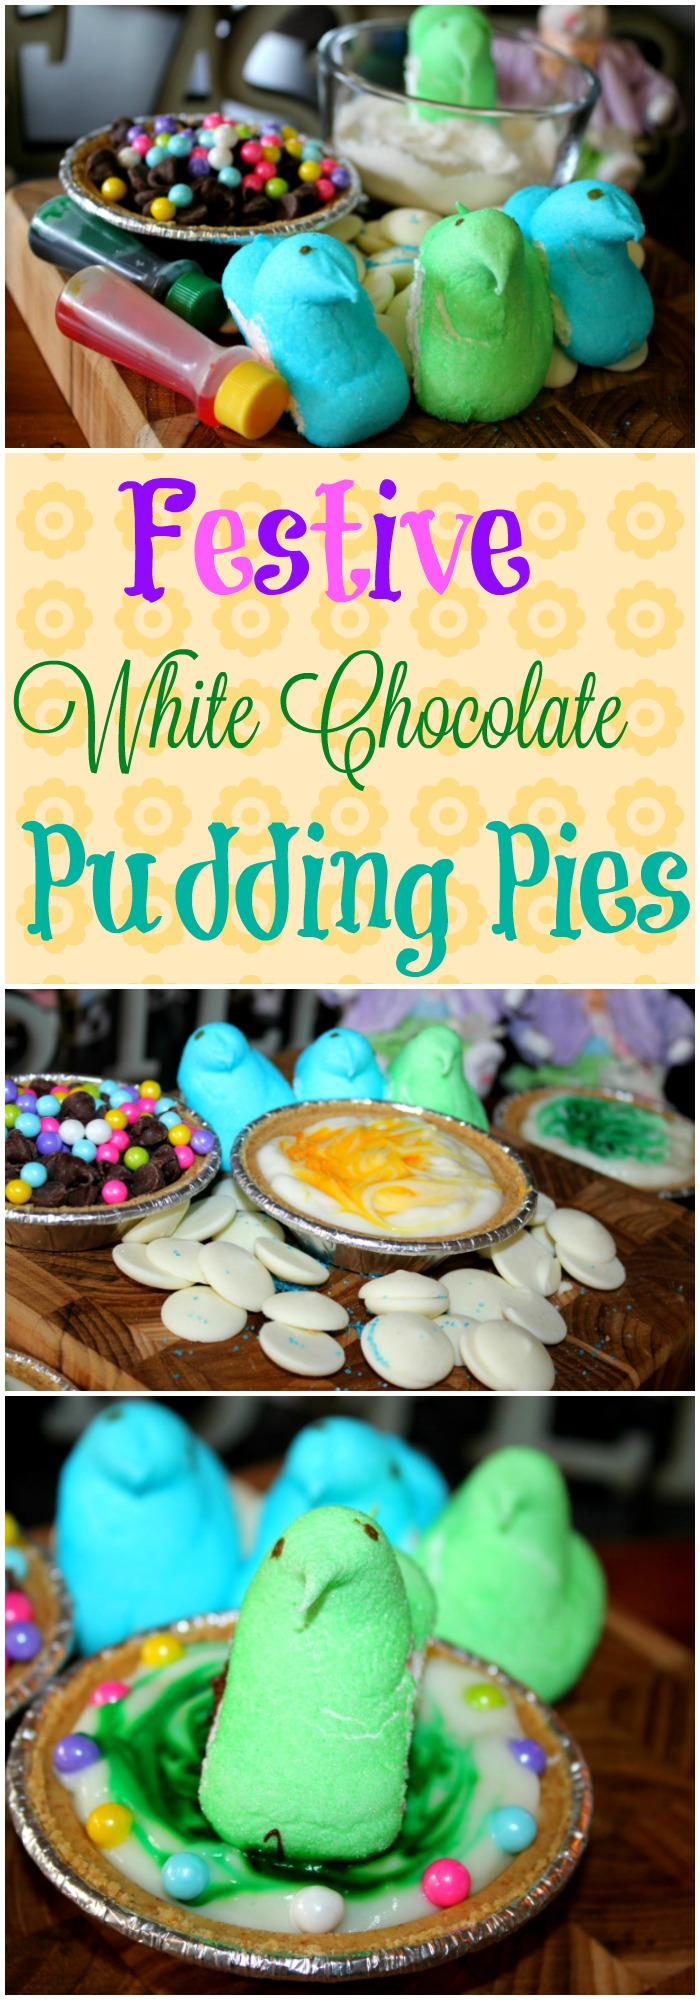 Festive White Chocolate Pudding Pies